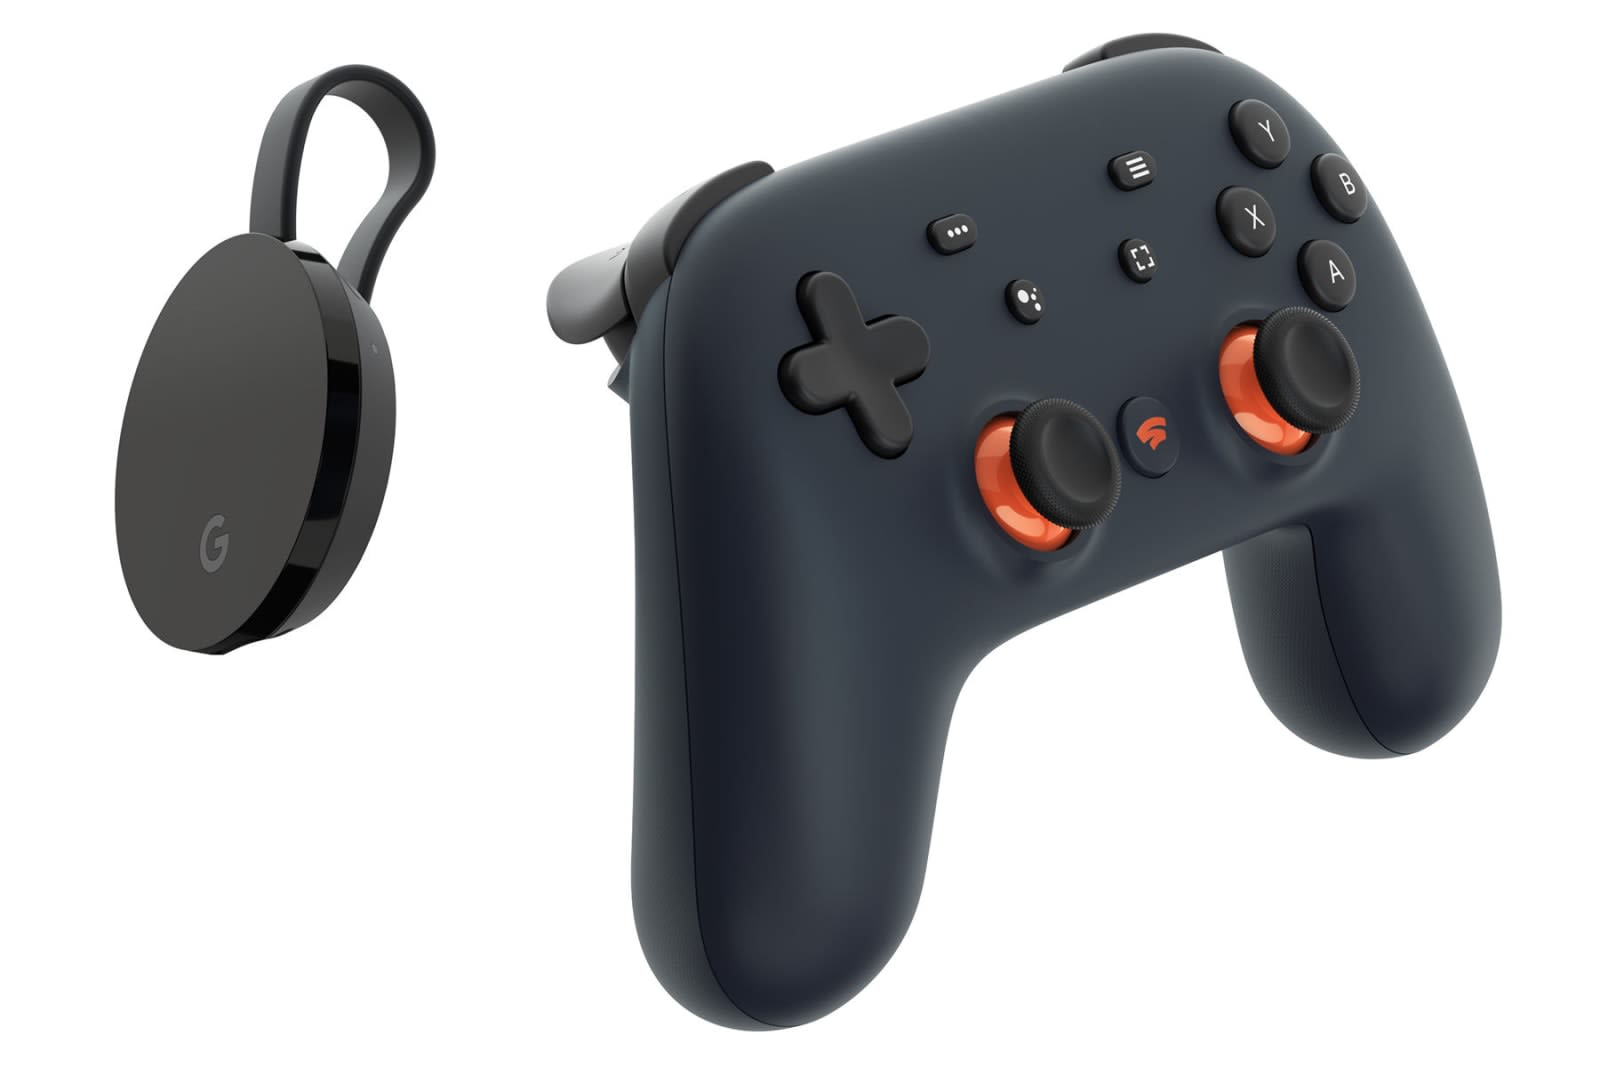 Recommended Reading: The Google Stadia controller prototypes